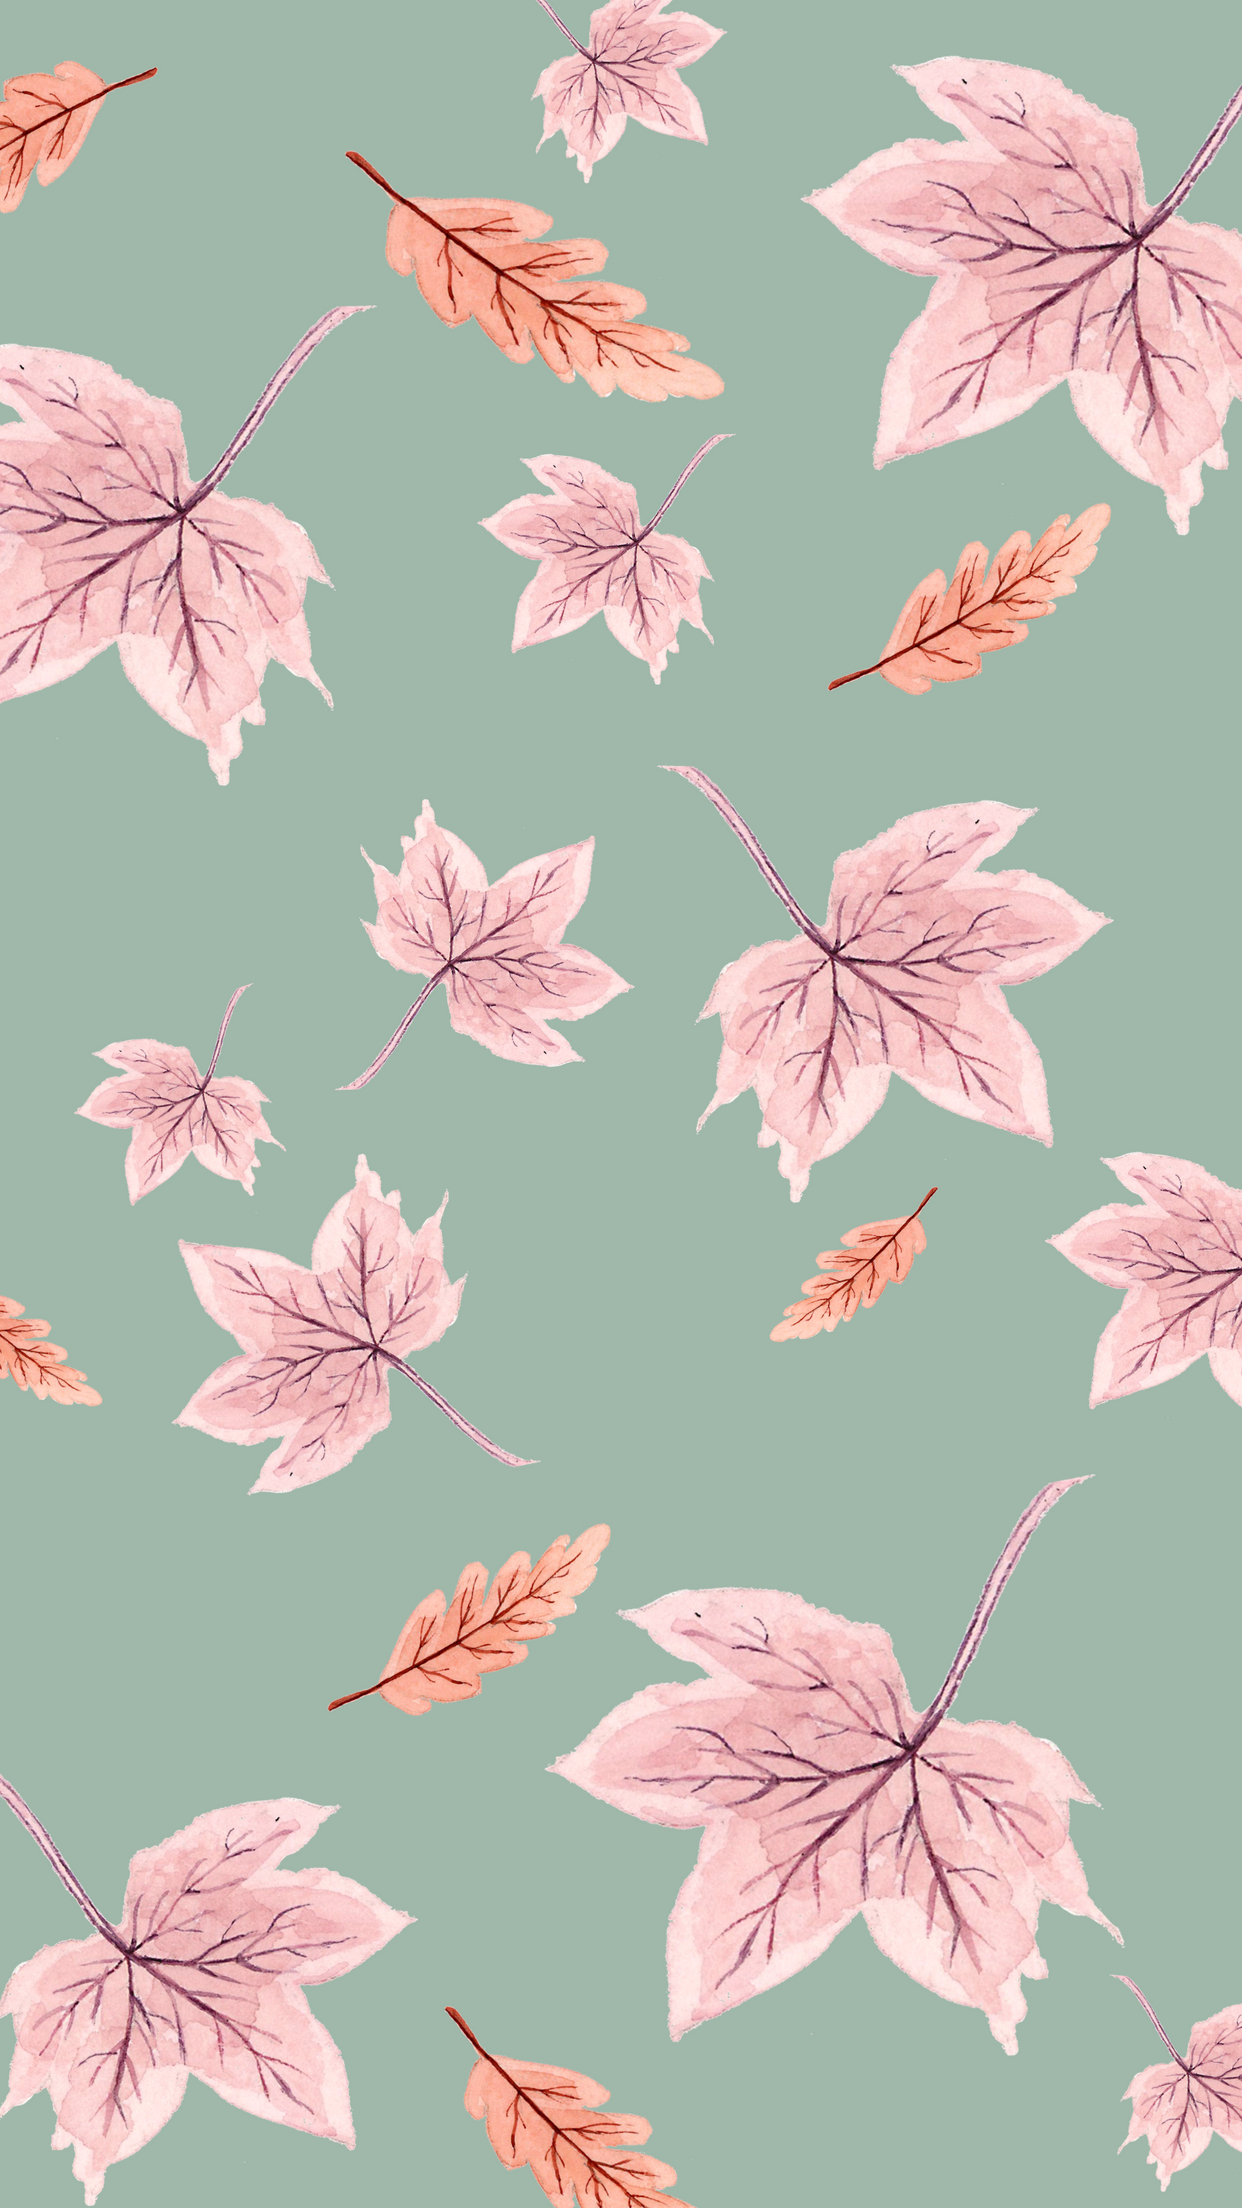 Fall-Cell-Phone-Wallpaper-Background-Leaves-Sage.jpg